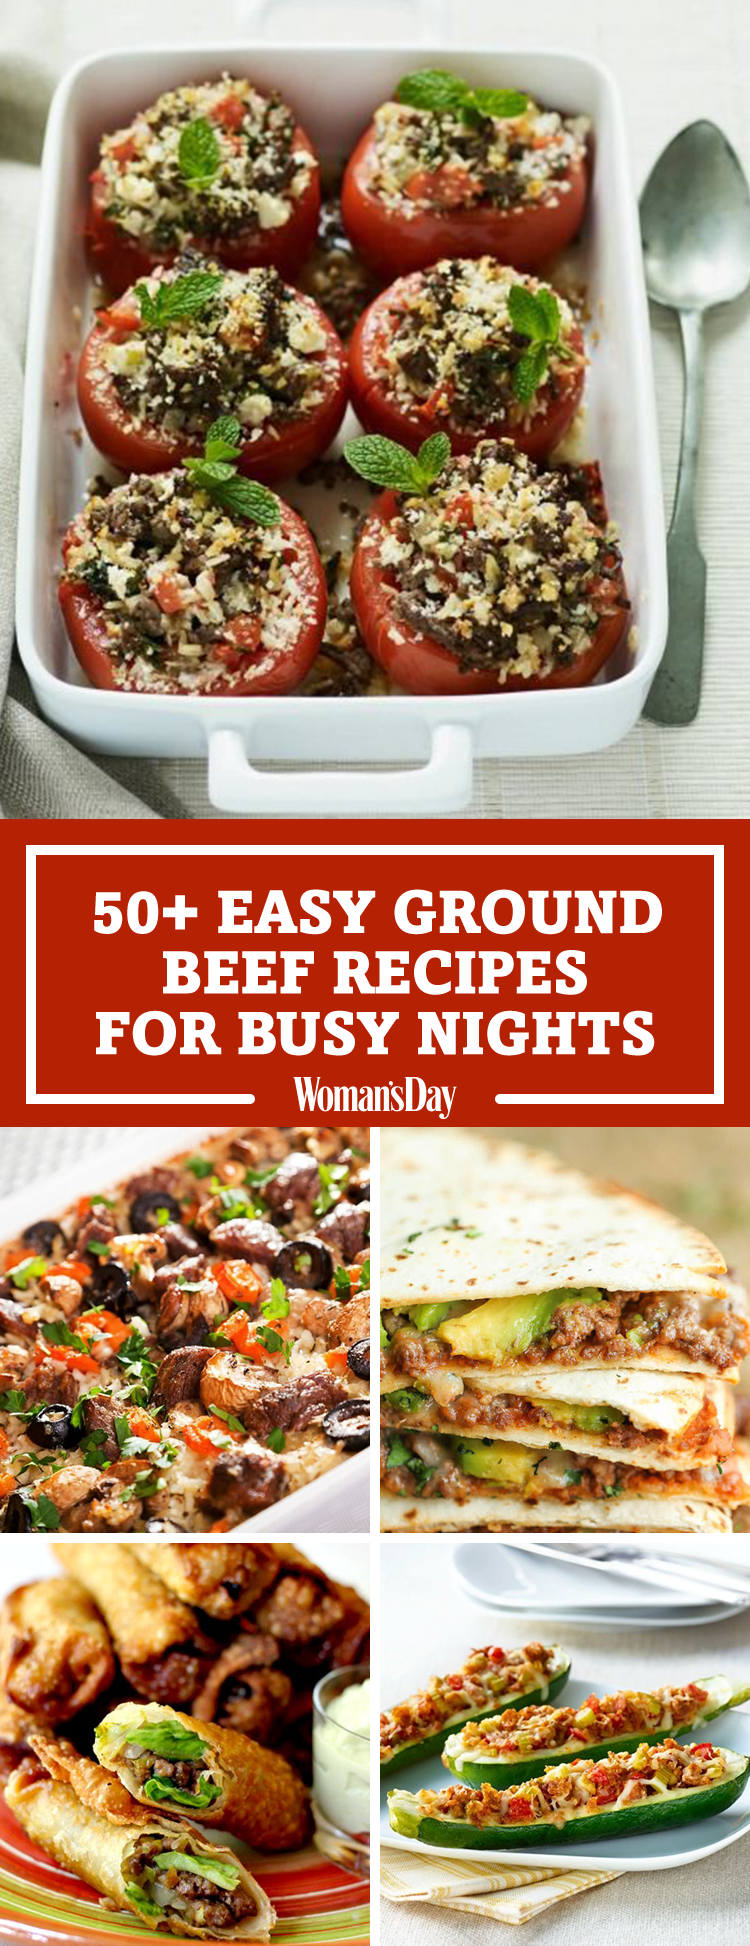 55+ Easy Ground Beef Recipes